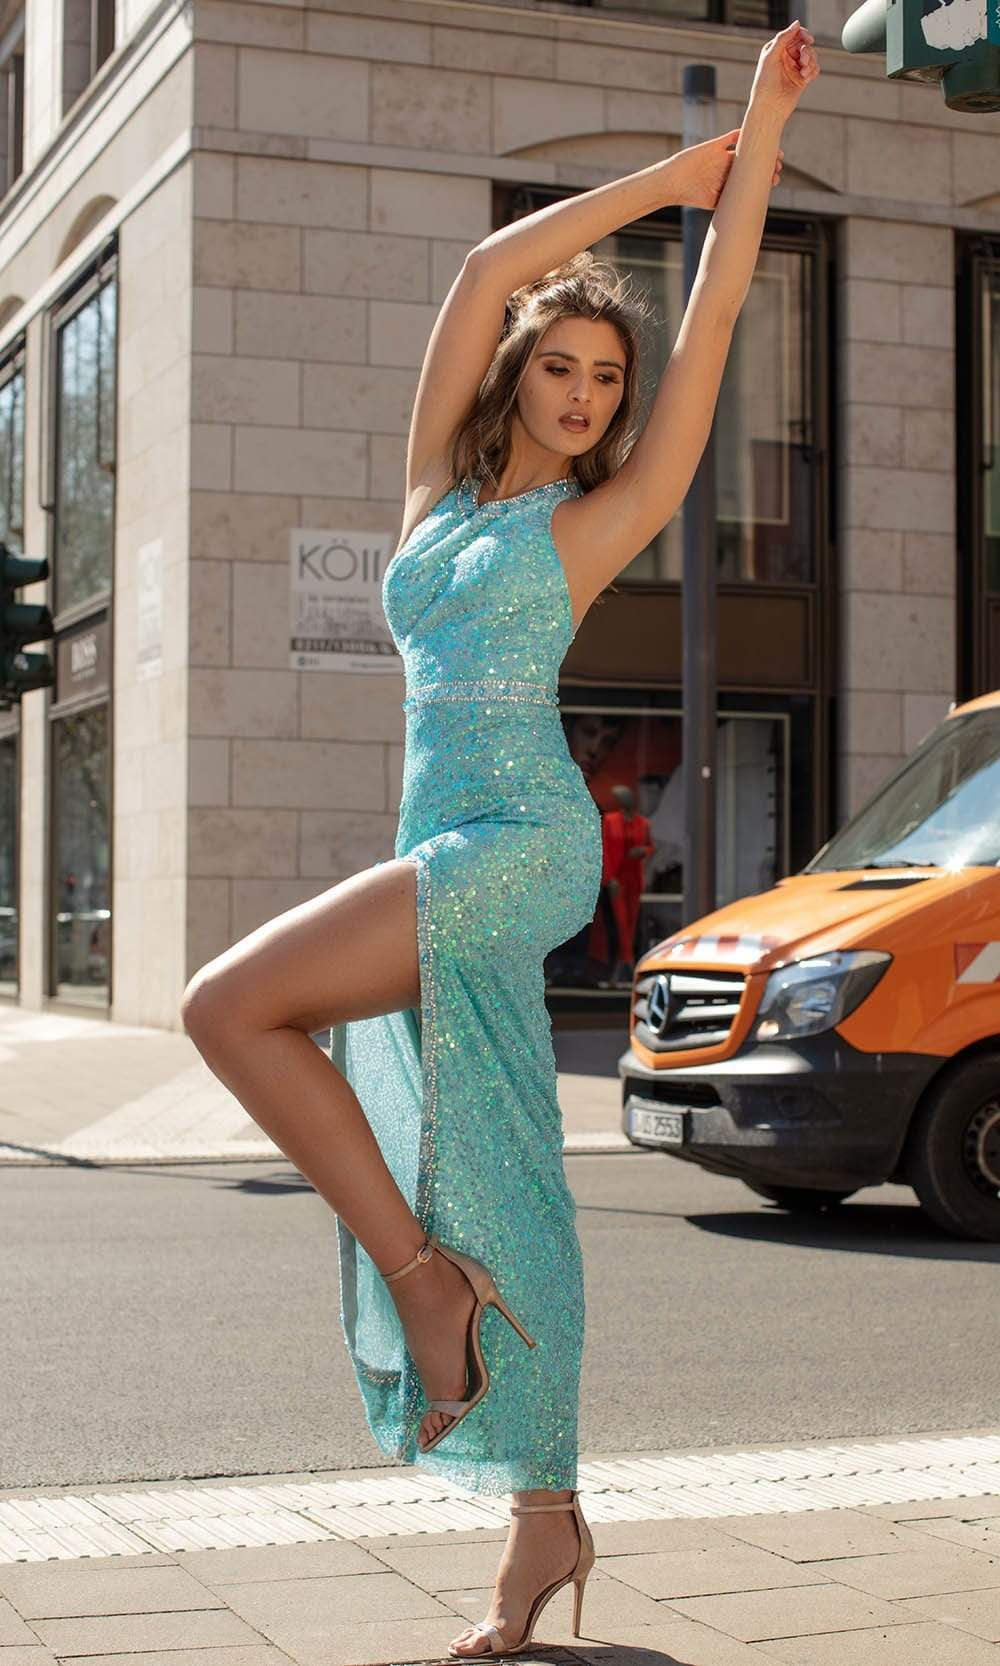 Chic and Holland - AN1411 Sequined Jewel Neck High Slit Dress from Chic and Holland